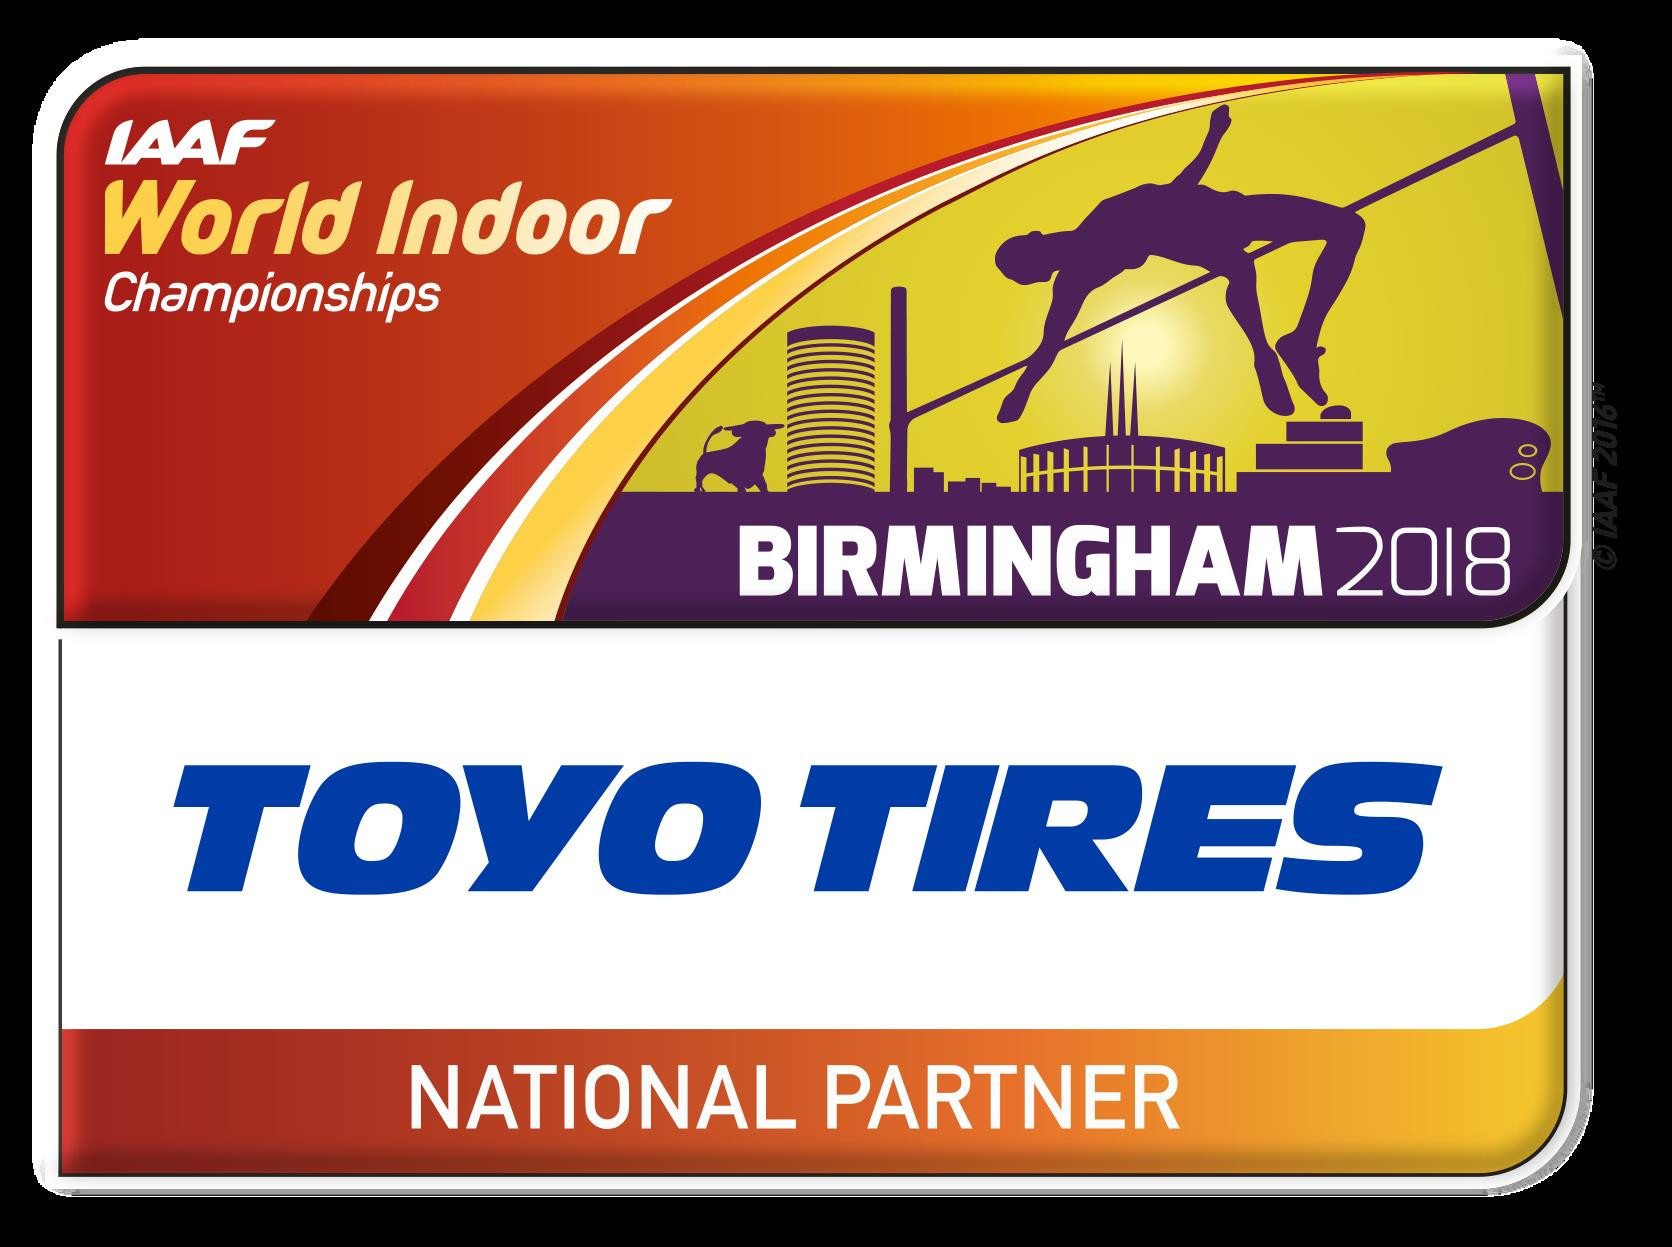 IAAF World Indoor Championships 2018 announce Toyo Tires as national partner